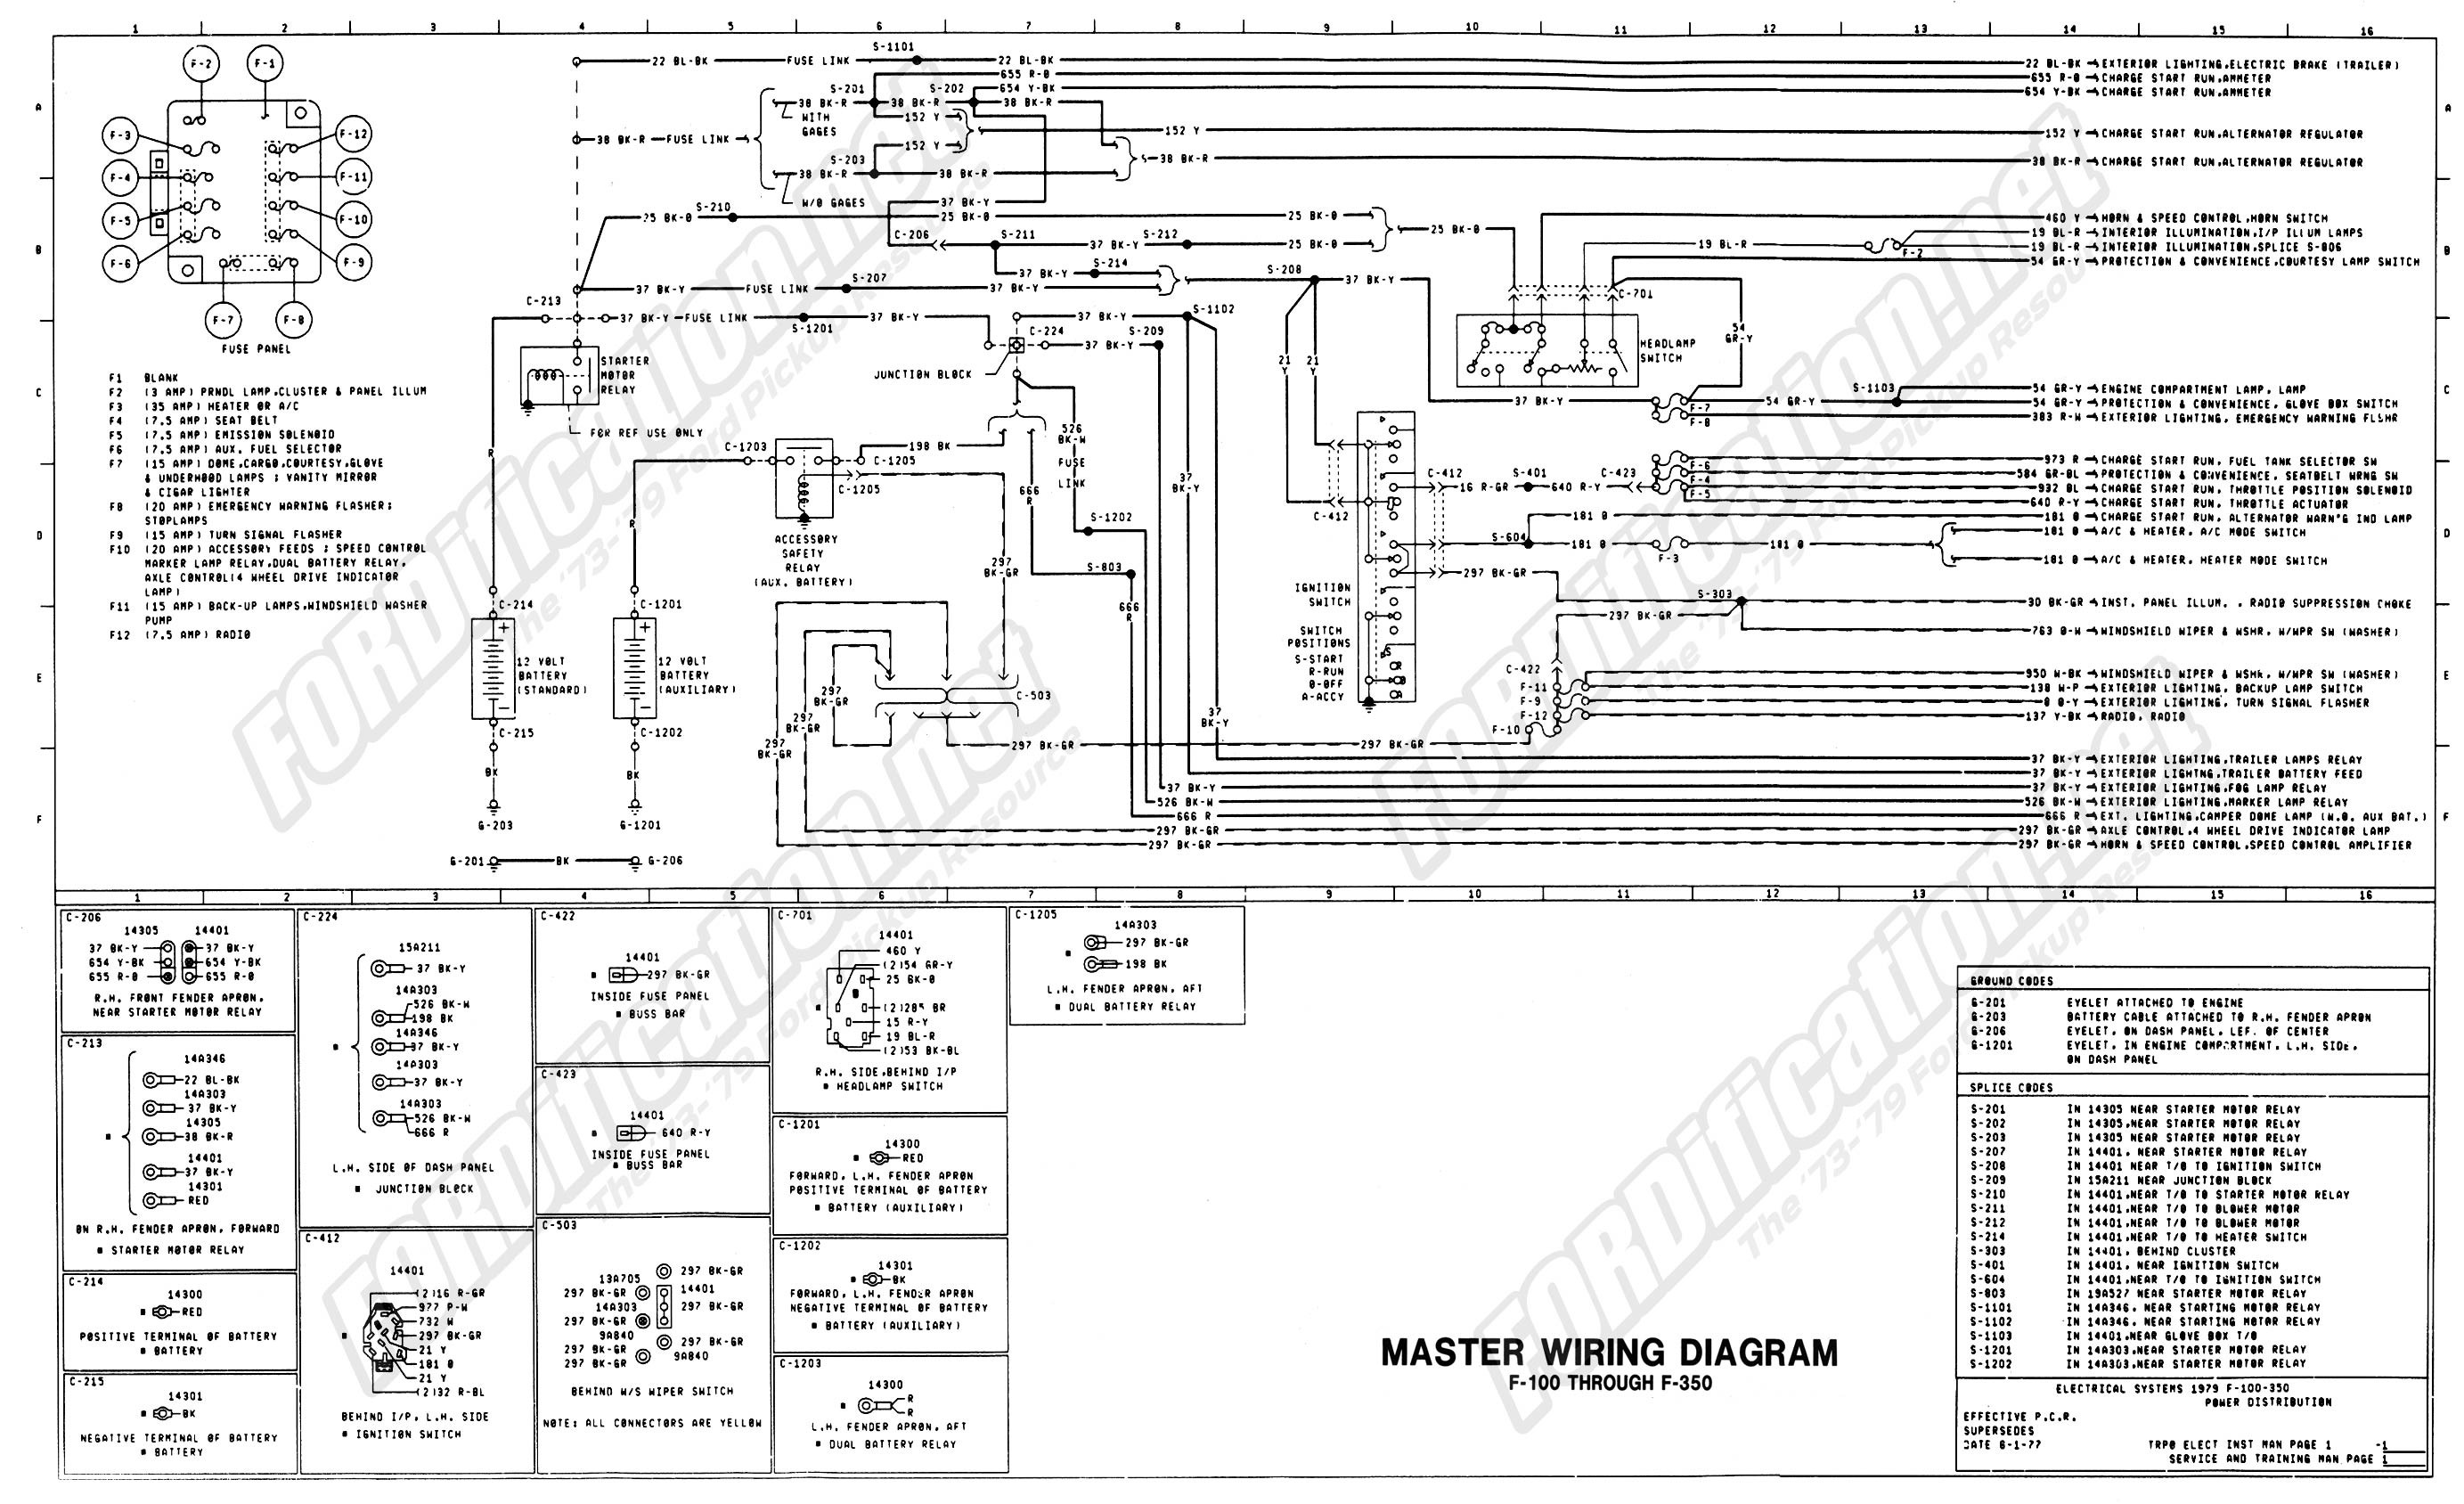 1988 Ford F800 Ignition Switch Wiring Electrical Work Wiring Diagram \u2022  1991 Ford F800 F-Series Ford F800 Wiring